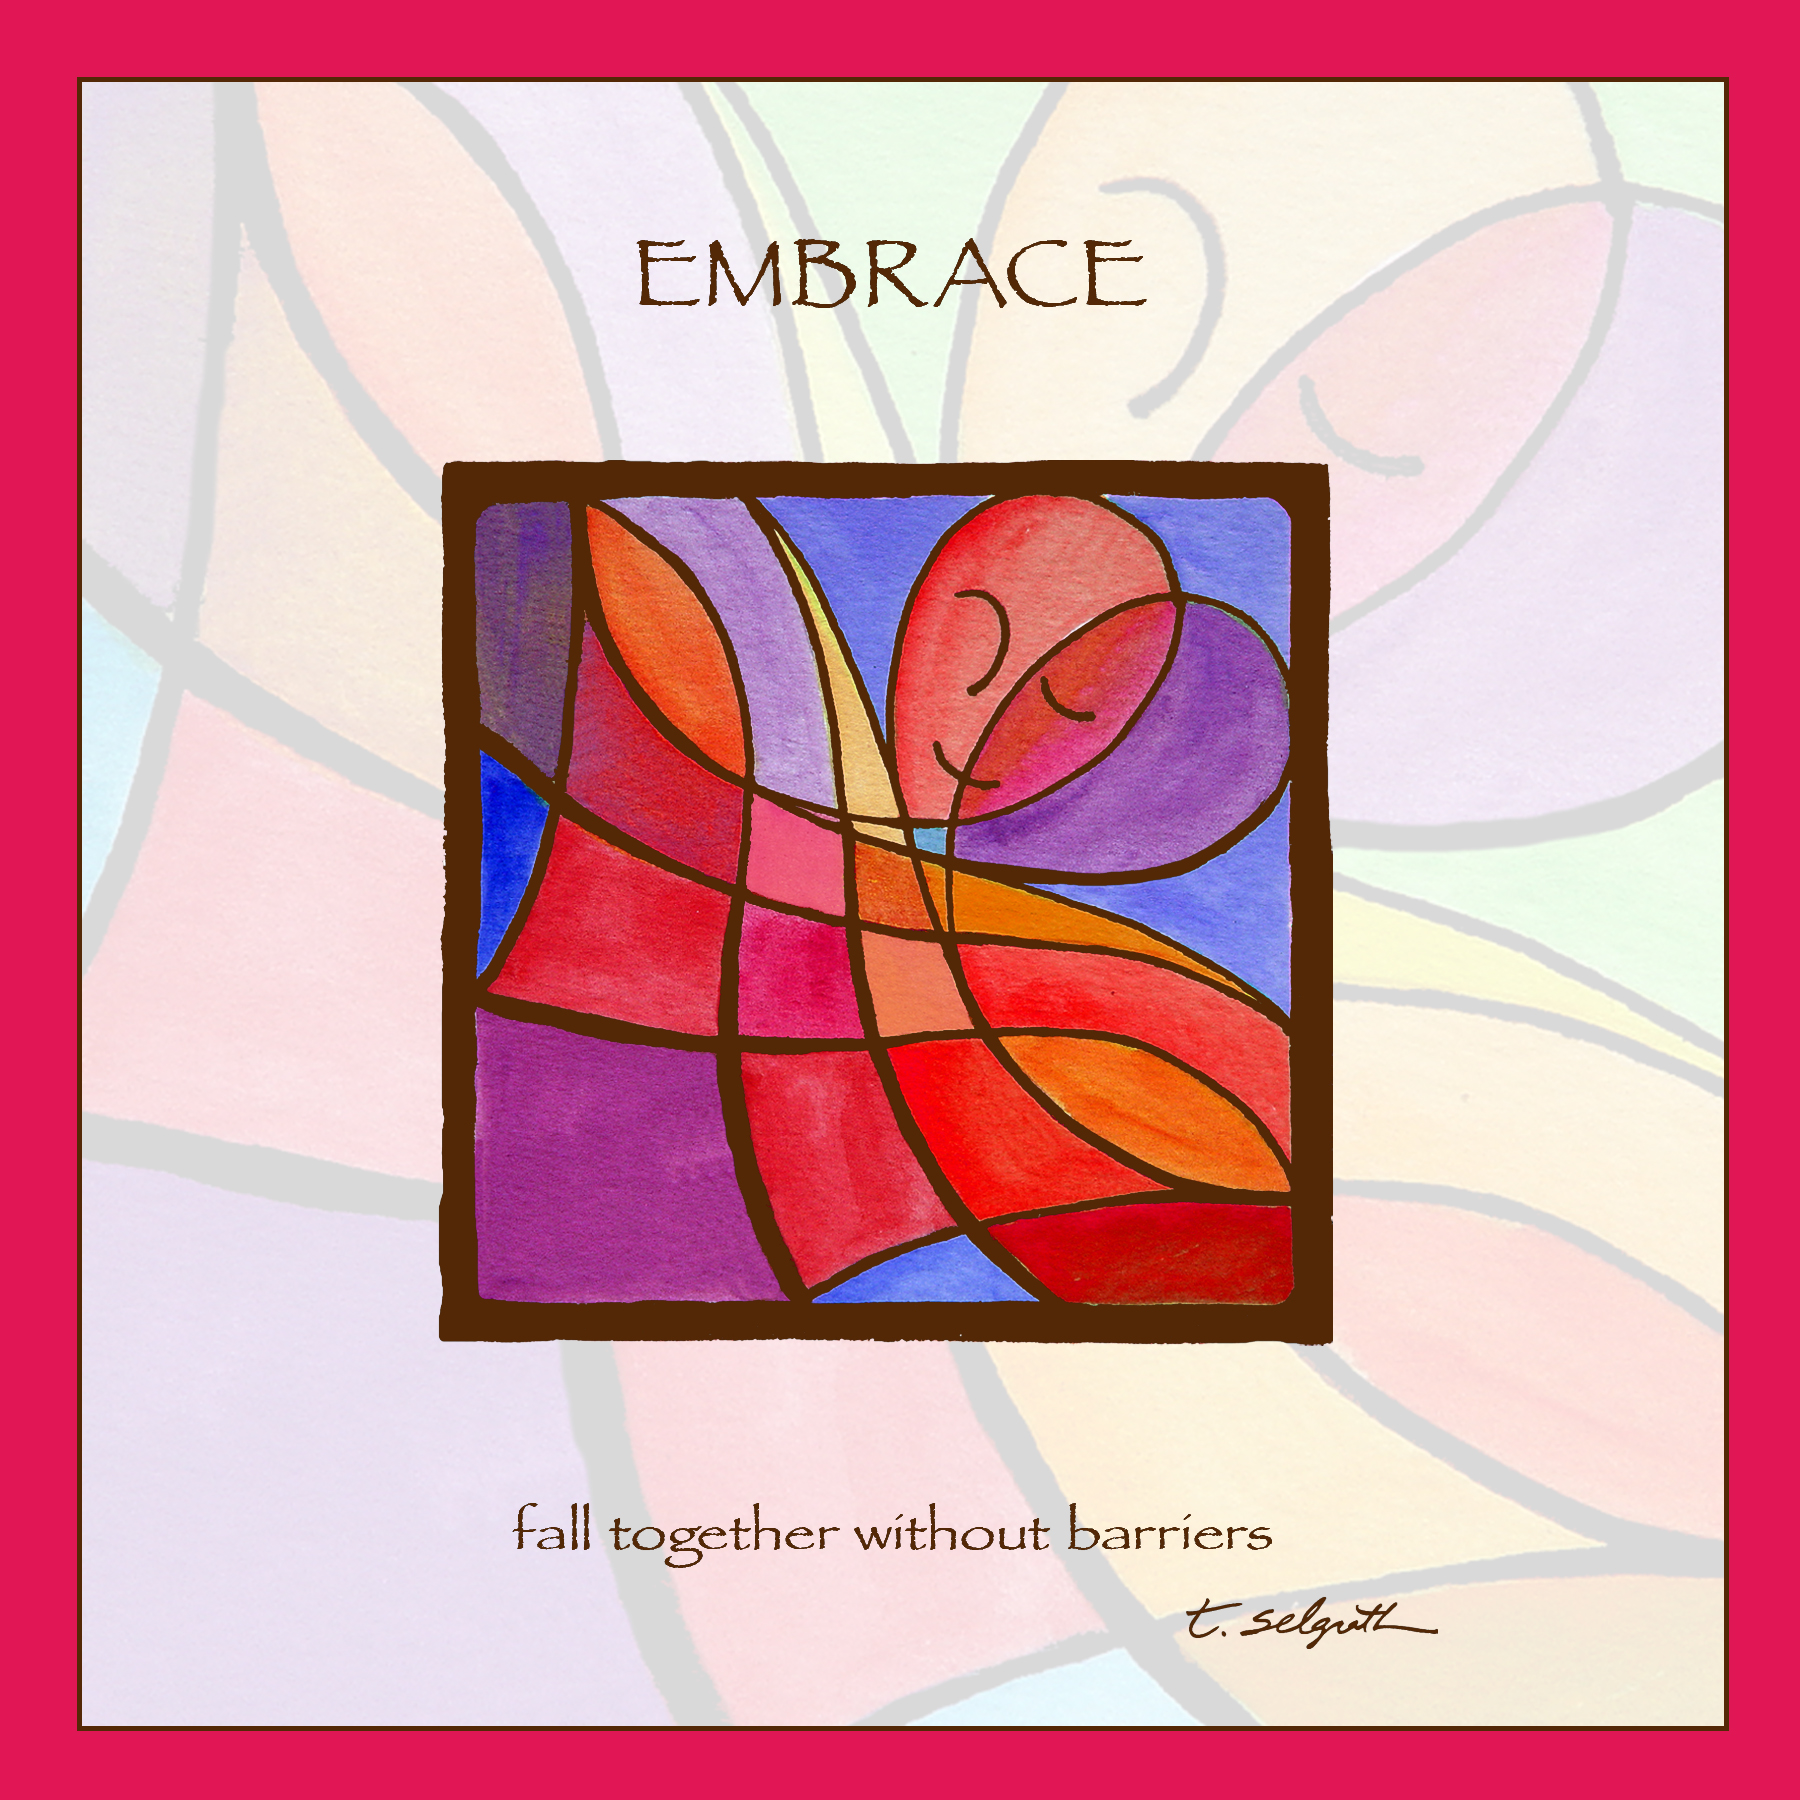 Embrace- fall together without barriers. 10x10 inch adhesive art.